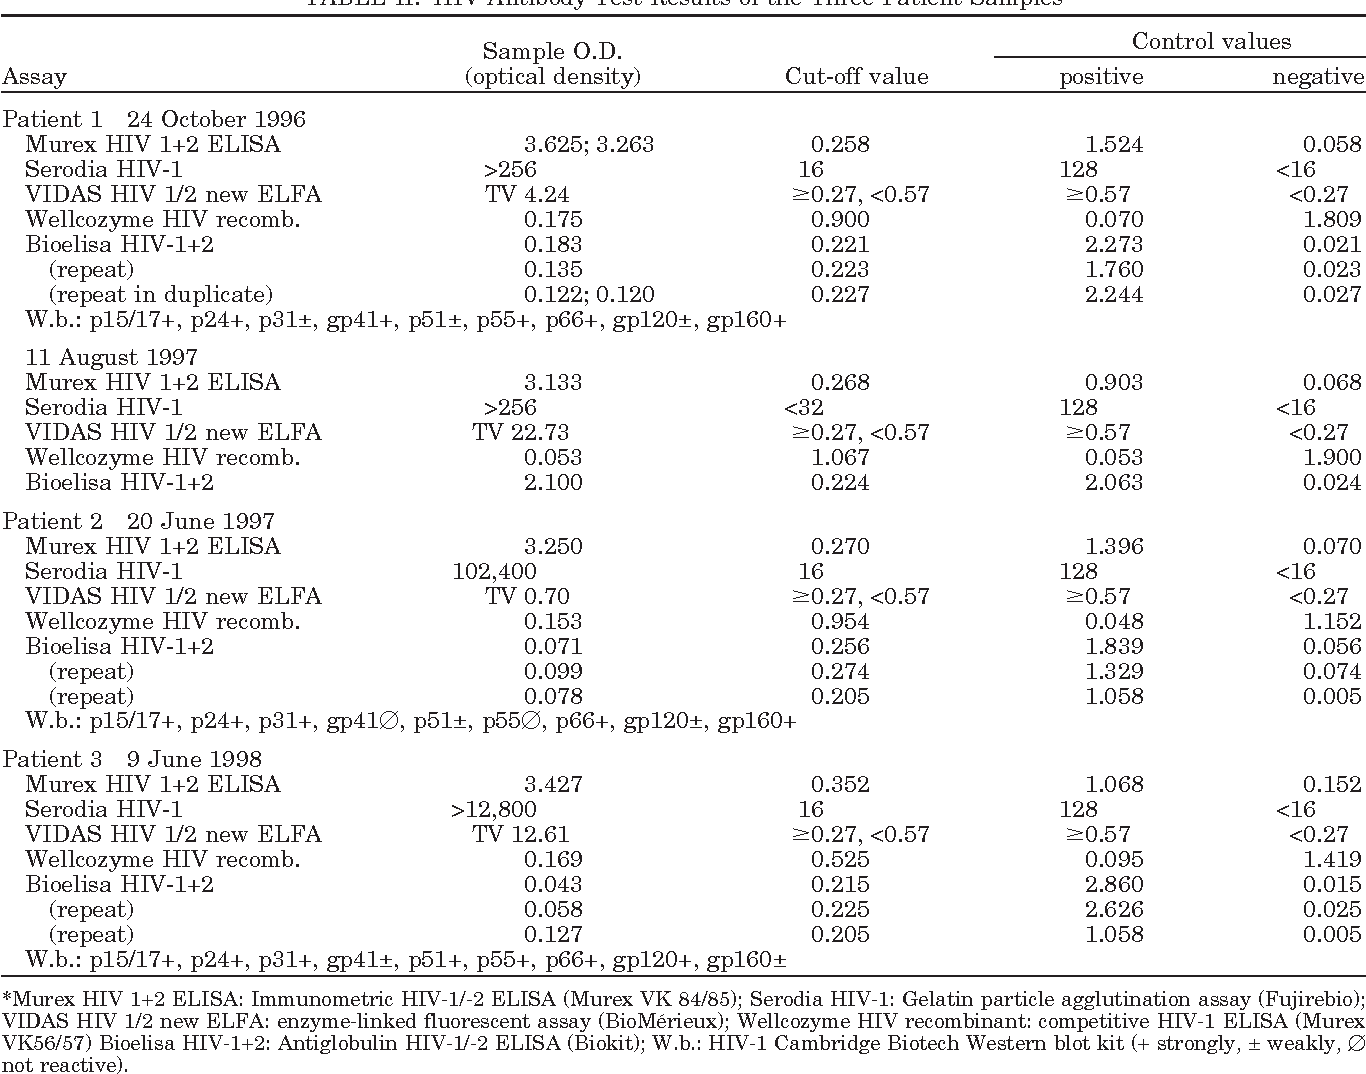 Table II from False-negative HIV antibody test results  - Semantic